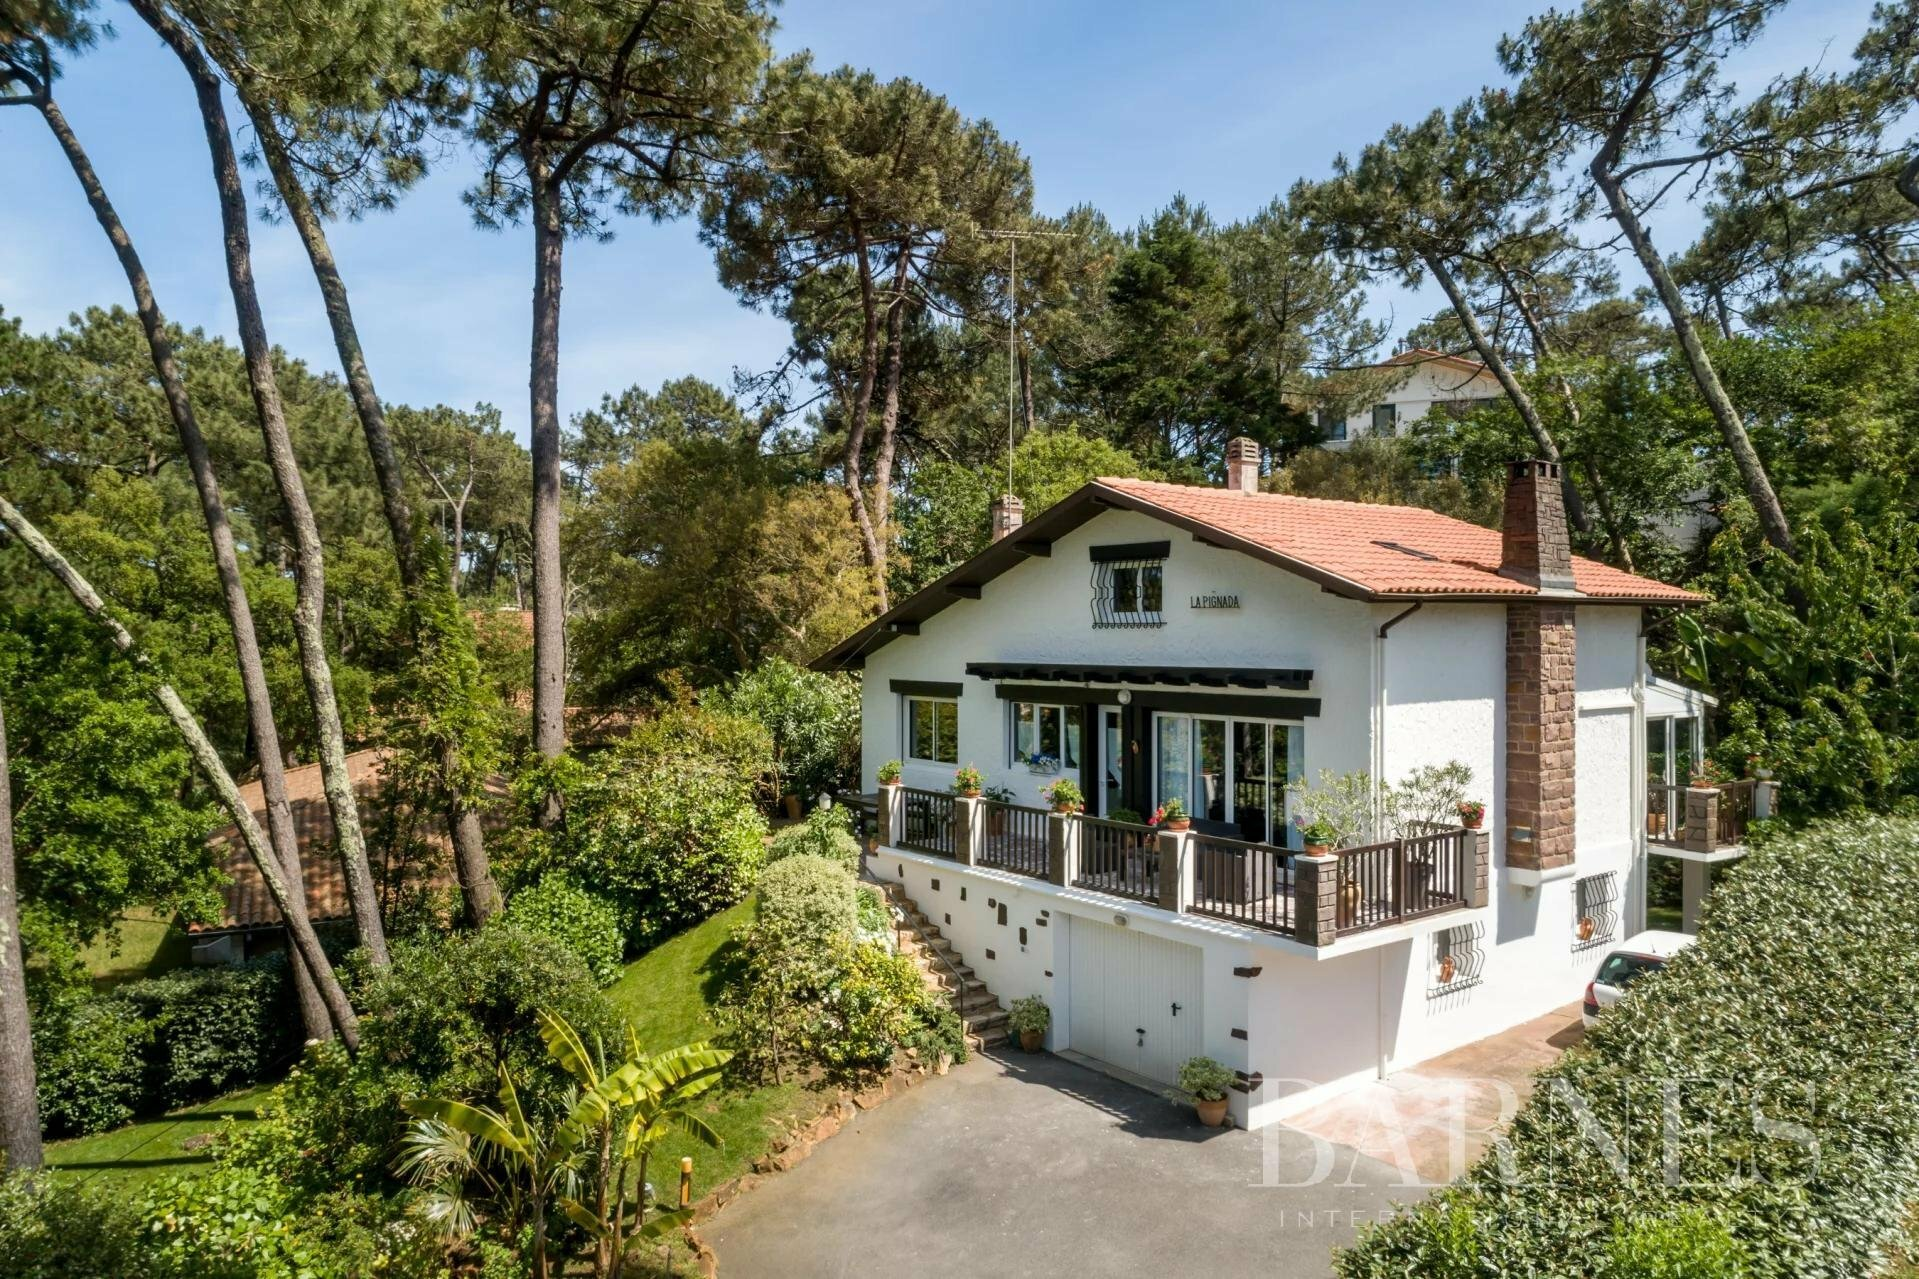 House in Hossegor, Nouvelle-Aquitaine, France 1 - 11463864